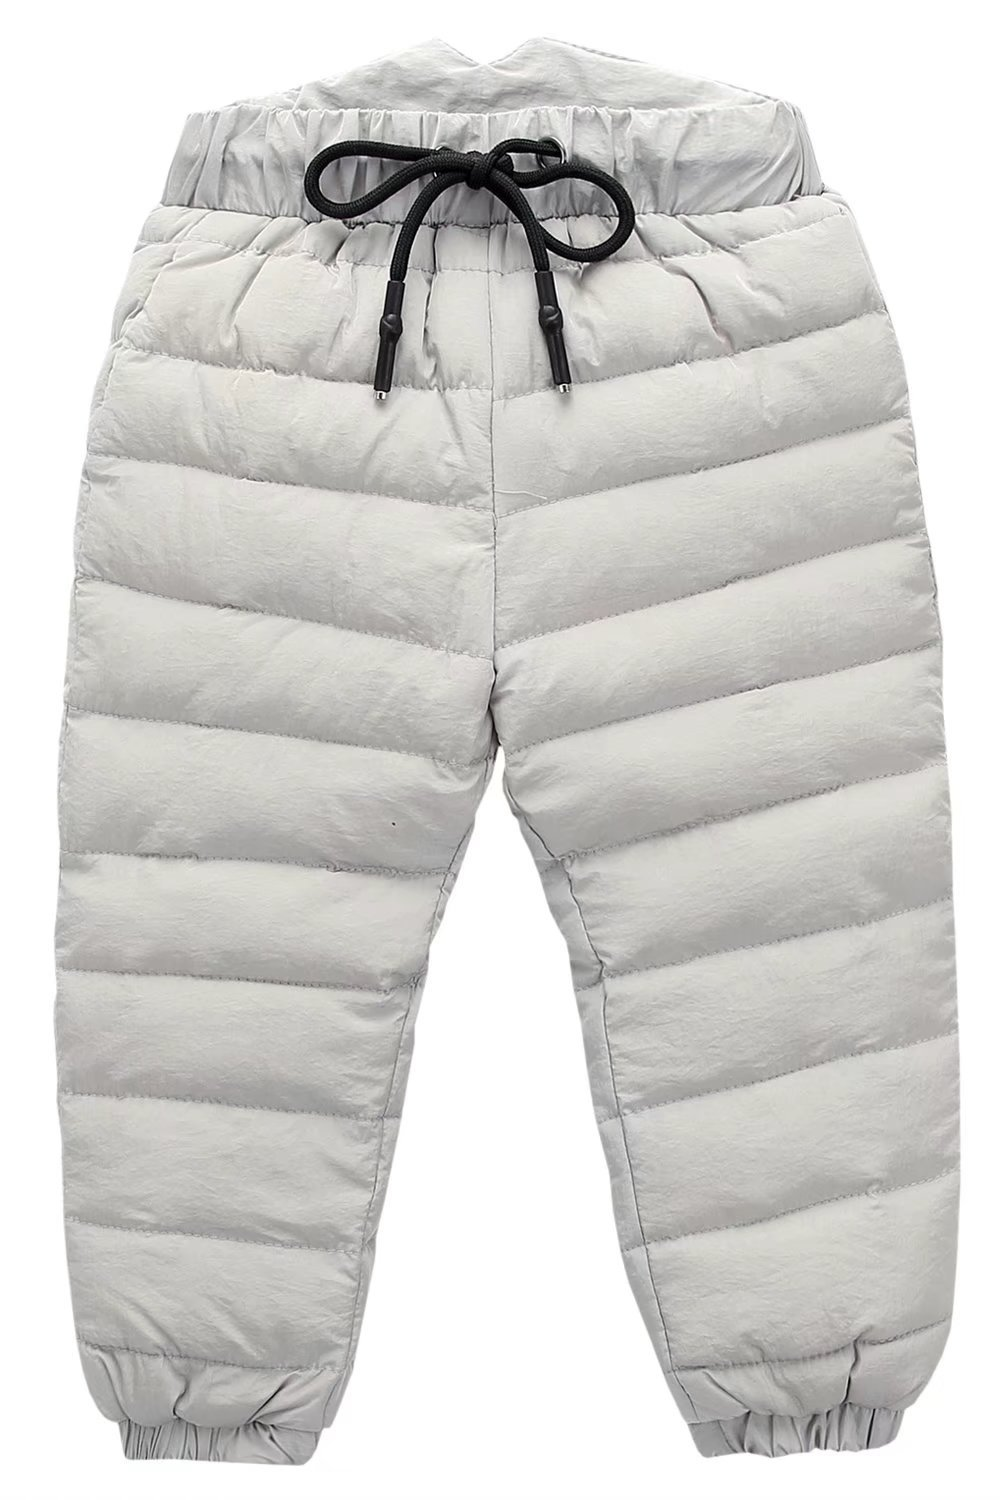 Boys Thick Warm Puffer Down Snow Pants Grey, 2-3 Years(2T-3T) = Tag 100